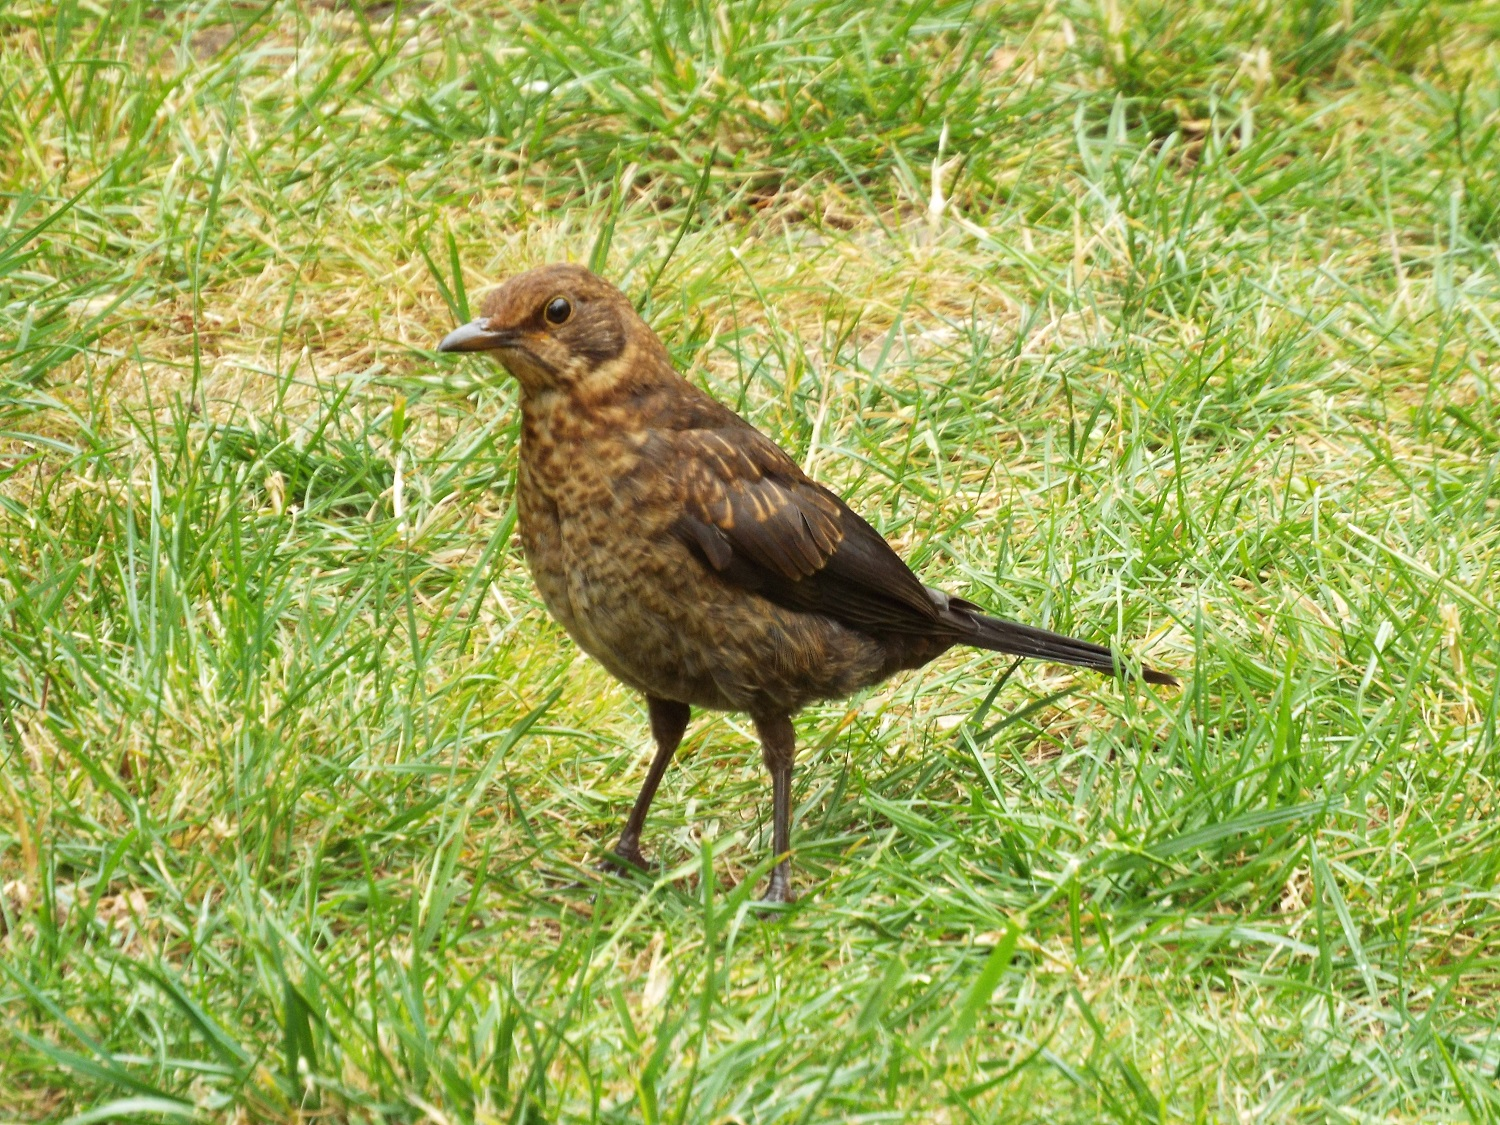 Fledgling blackbird, probably about two to three months old (All photos: Eleanor Scott)